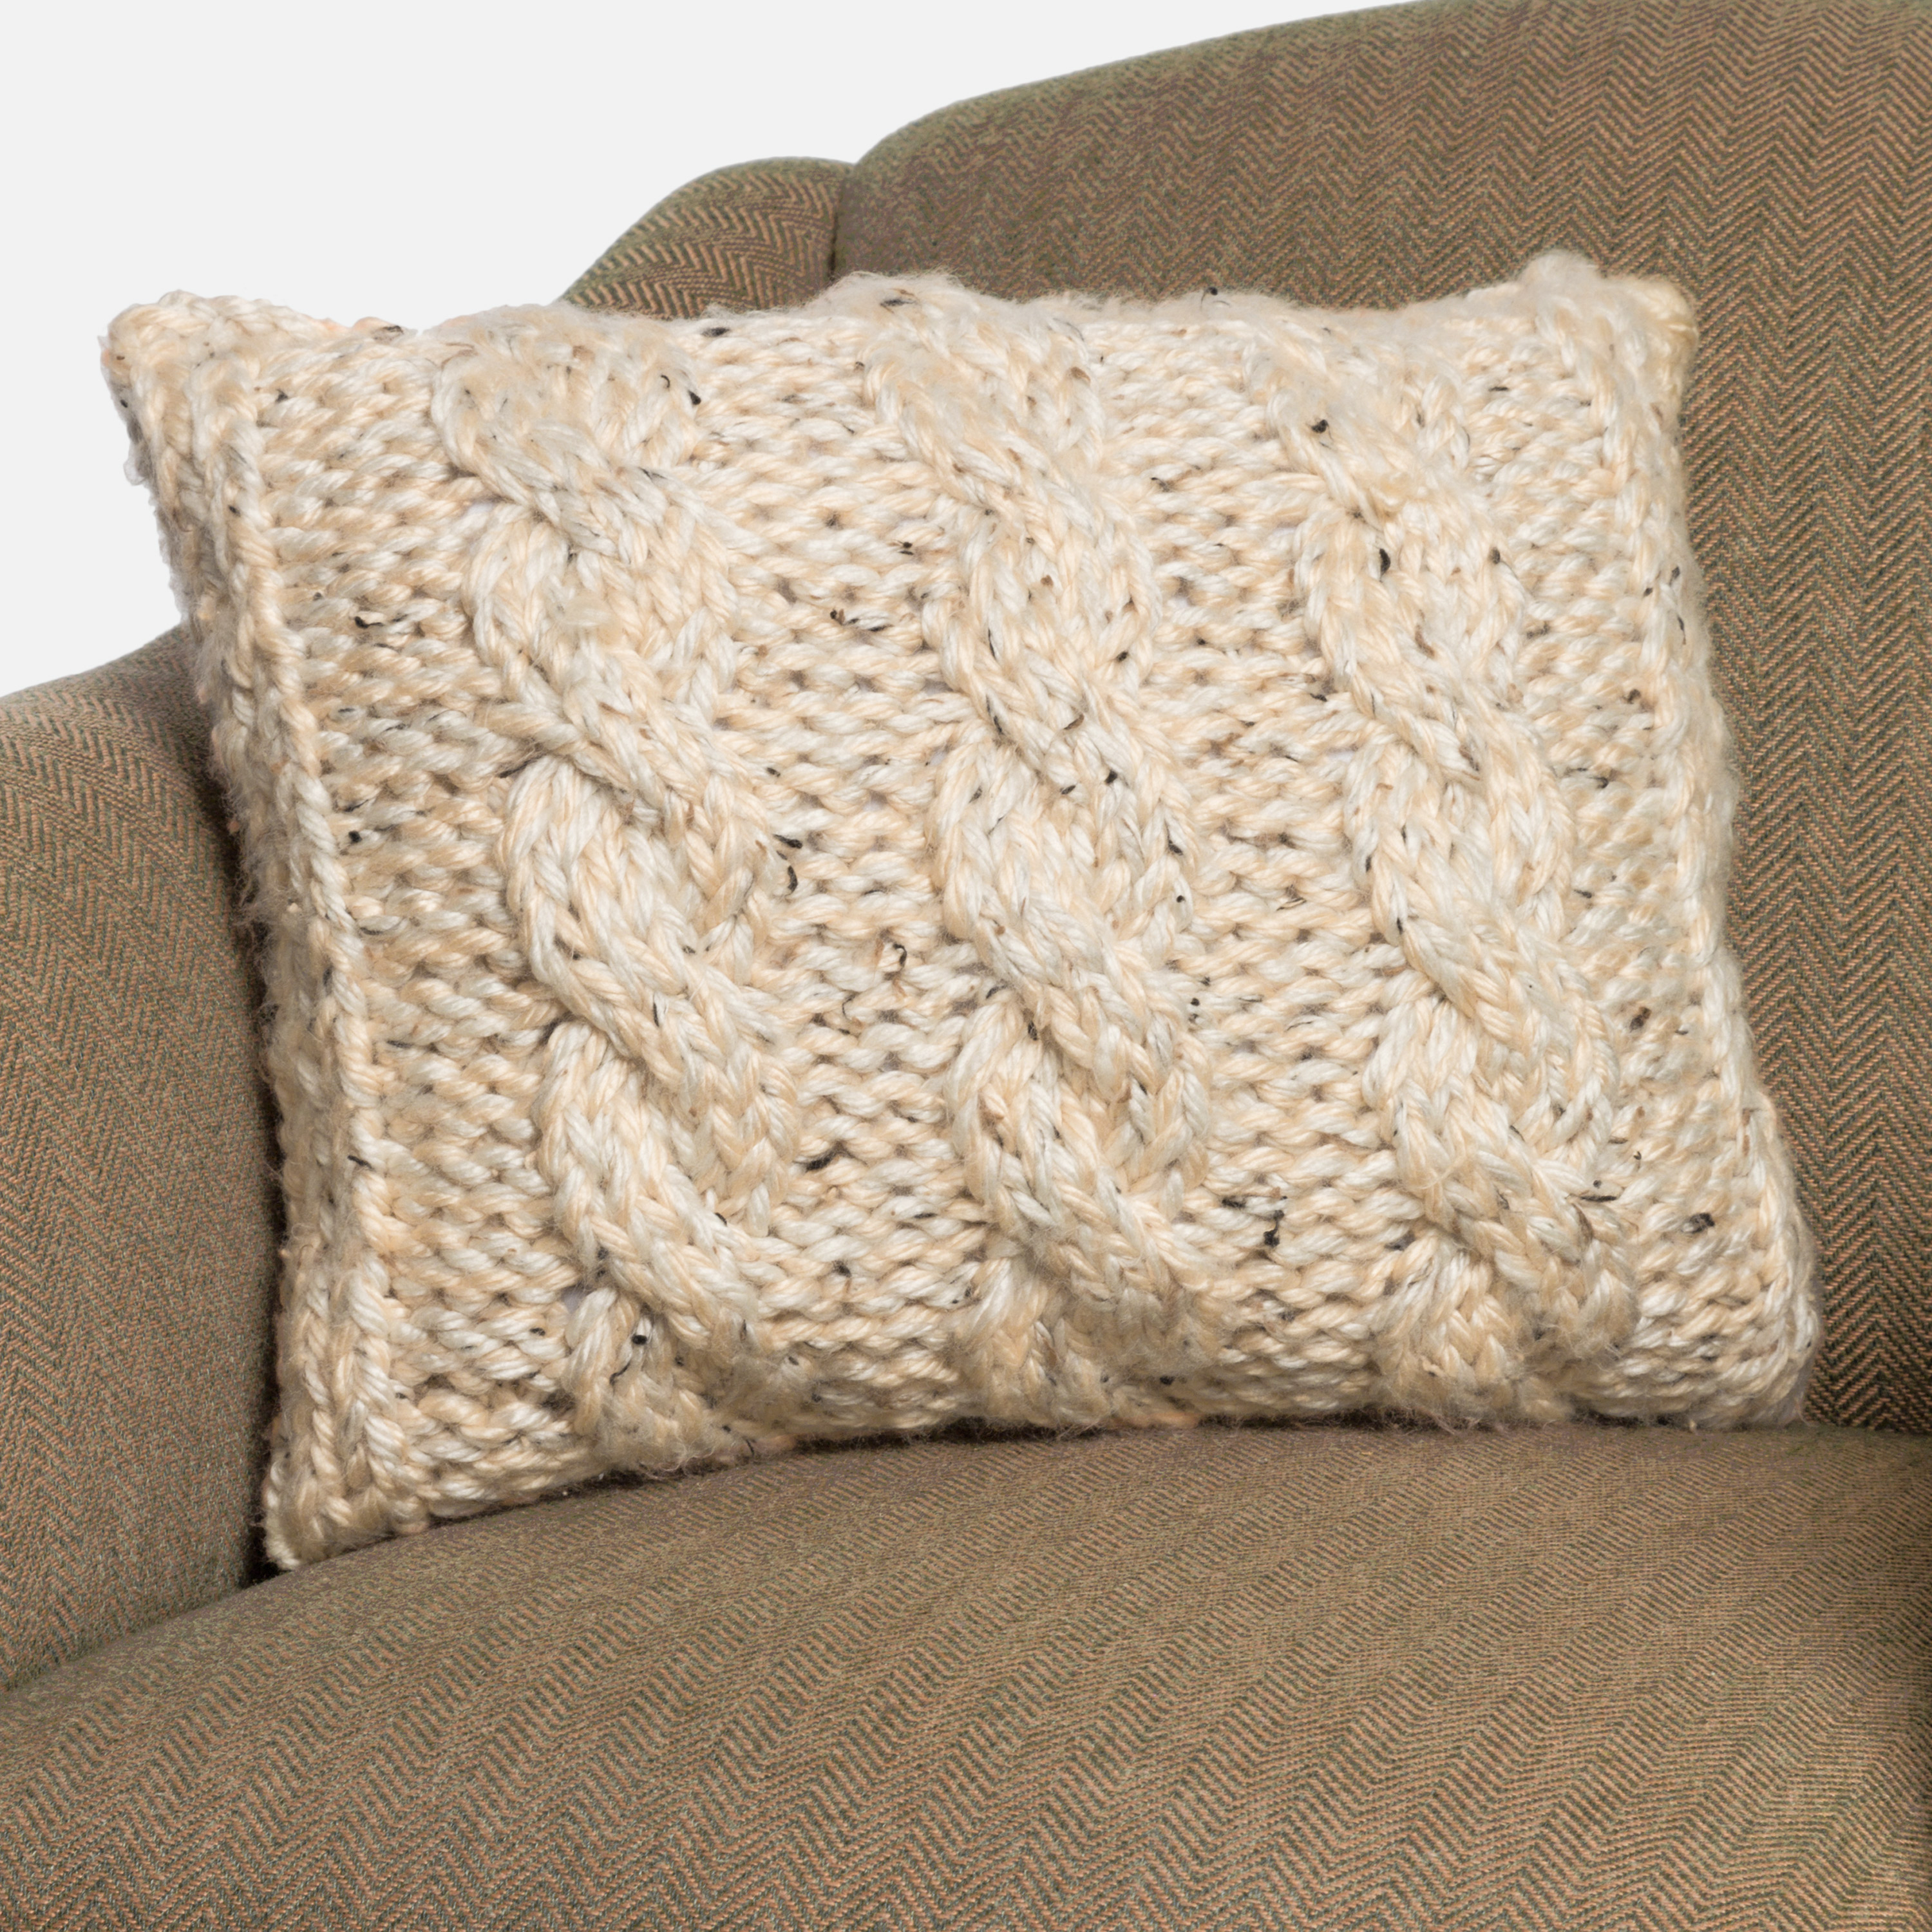 Knitting Pattern For Cushion Cover With Cables Chunky Cable Knit Pillow Cover